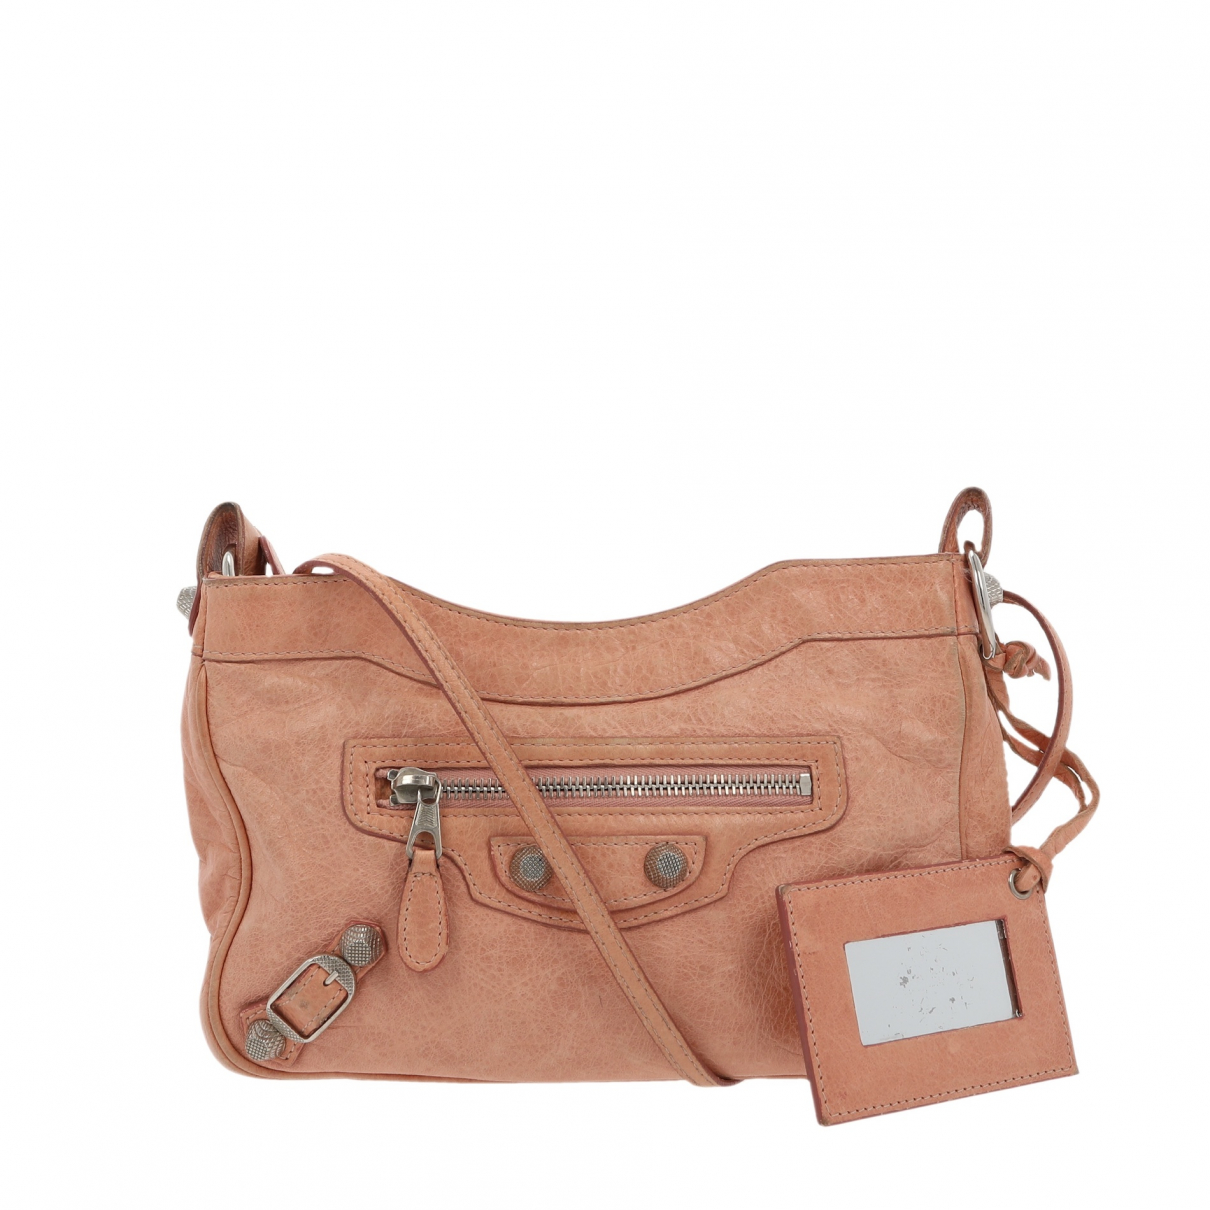 Balenciaga \N Pink Leather handbag for Women \N